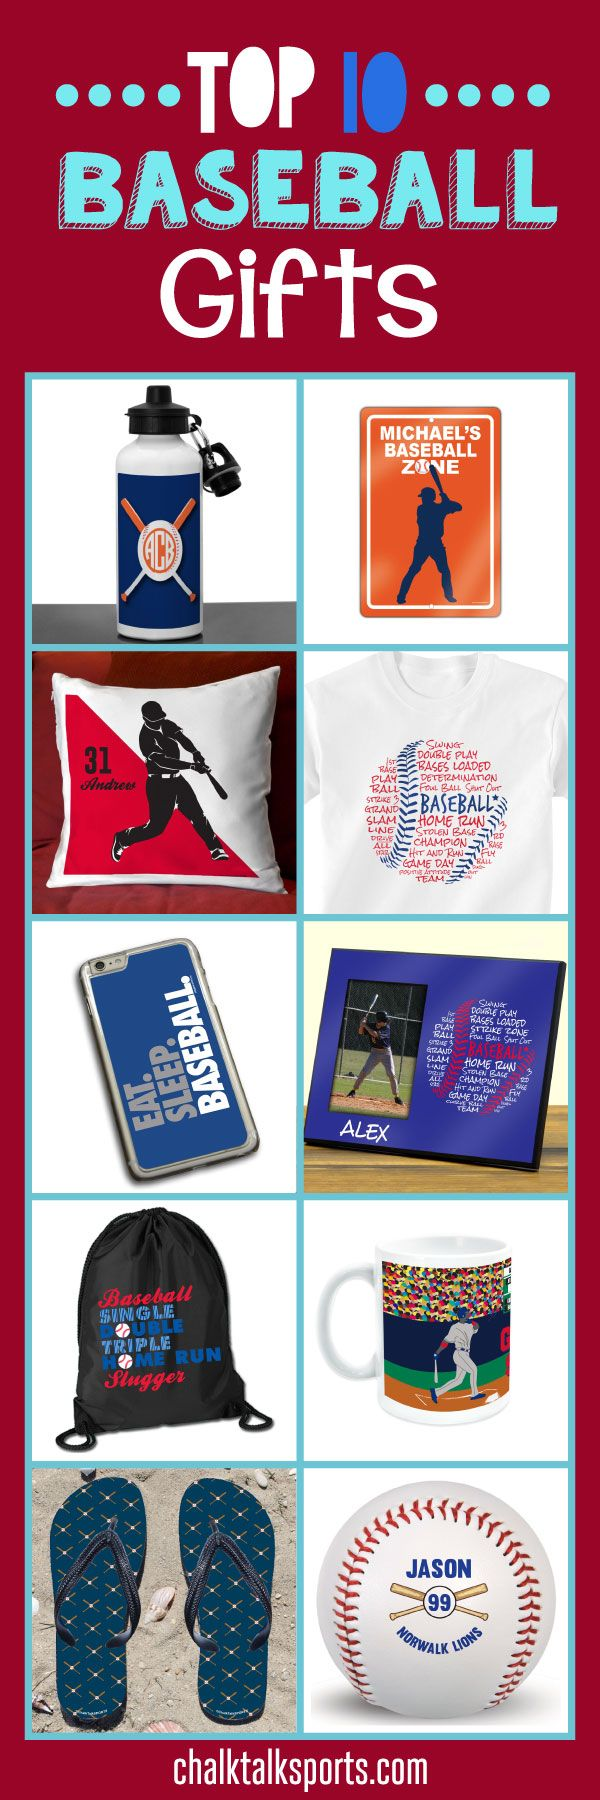 Top 10 baseball gift ideas: Perfect gift ideas for holidays, special occasions, and end of season gifts! These products are made-to-order and can be personalized with your team and baseball player's info! From custom flip flops to personalized beach towels, there are so many products to choose from at ChalkTalkSPORTS.com!